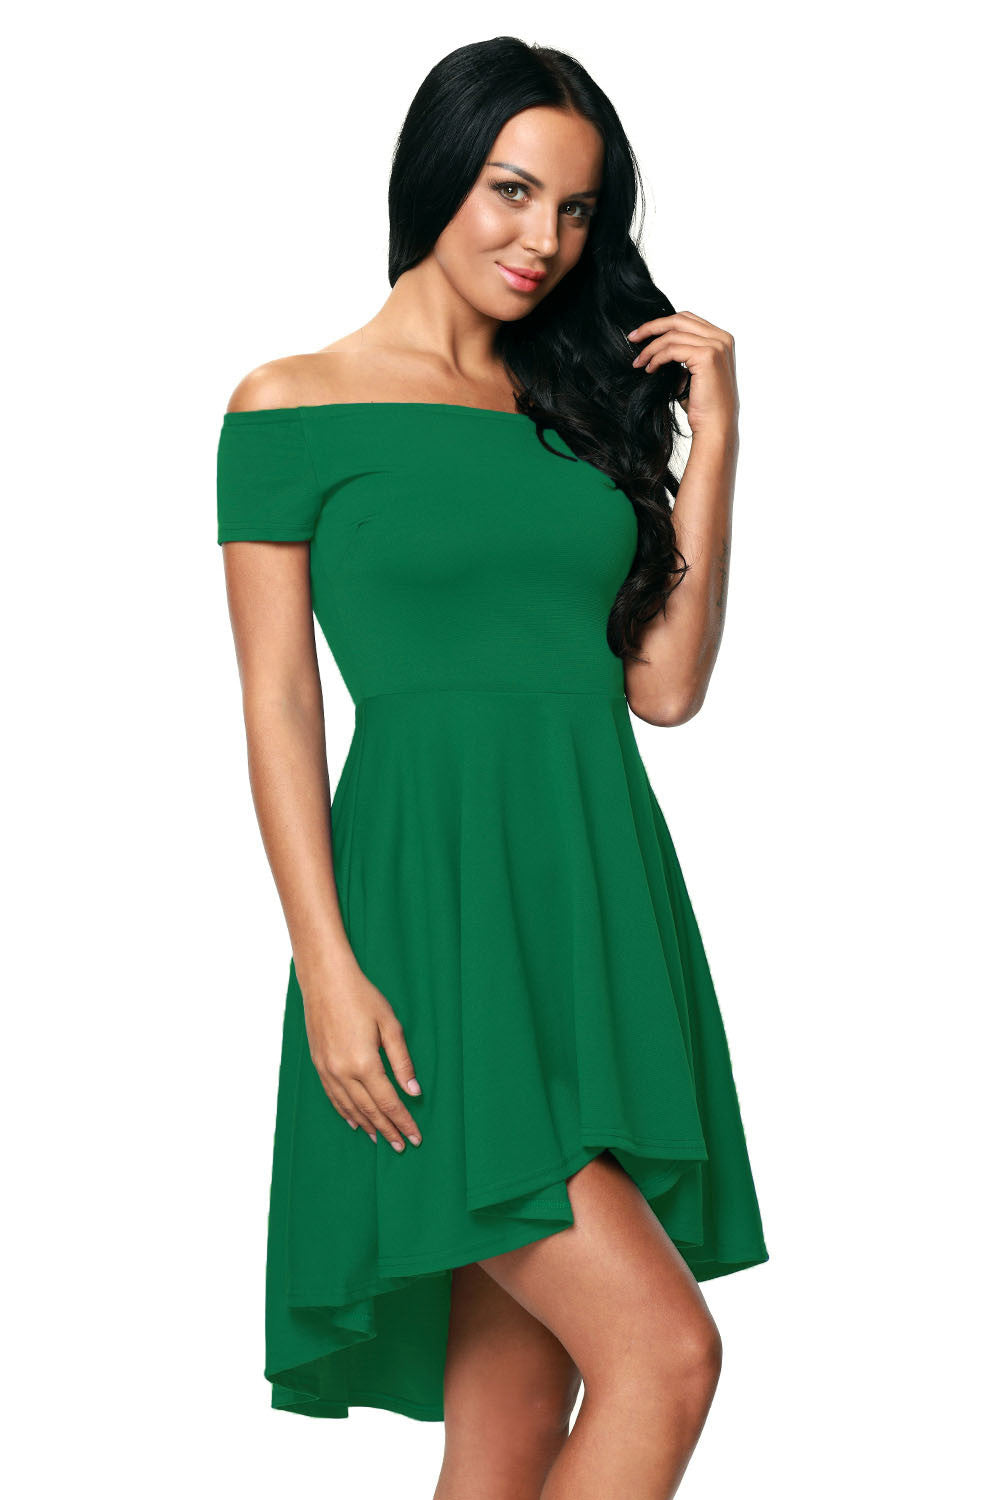 Green All The Rage Skater Dress